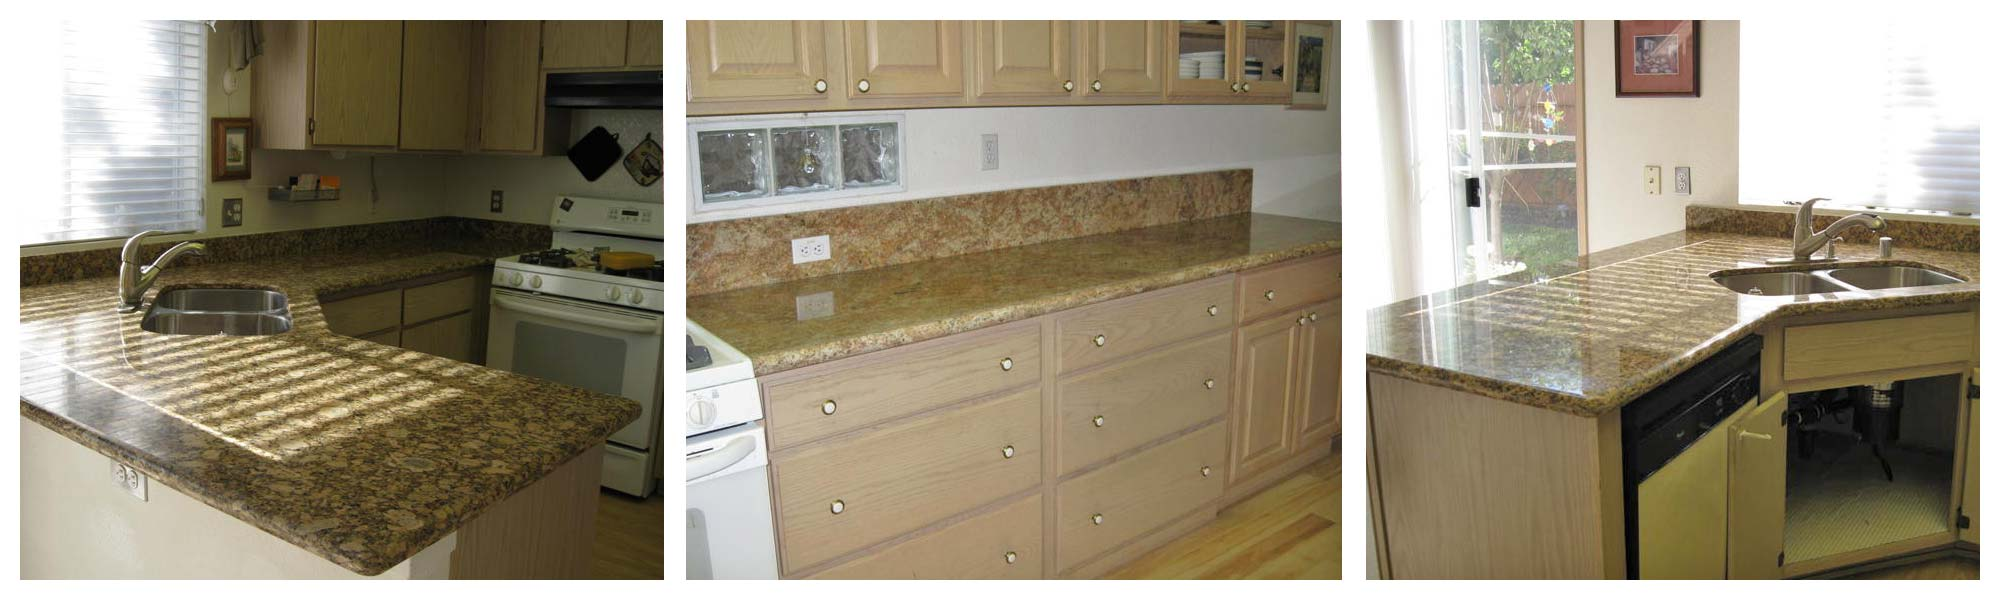 Laminated Wood, Sacrameto Granite and Tile-Review on Sacramento Google